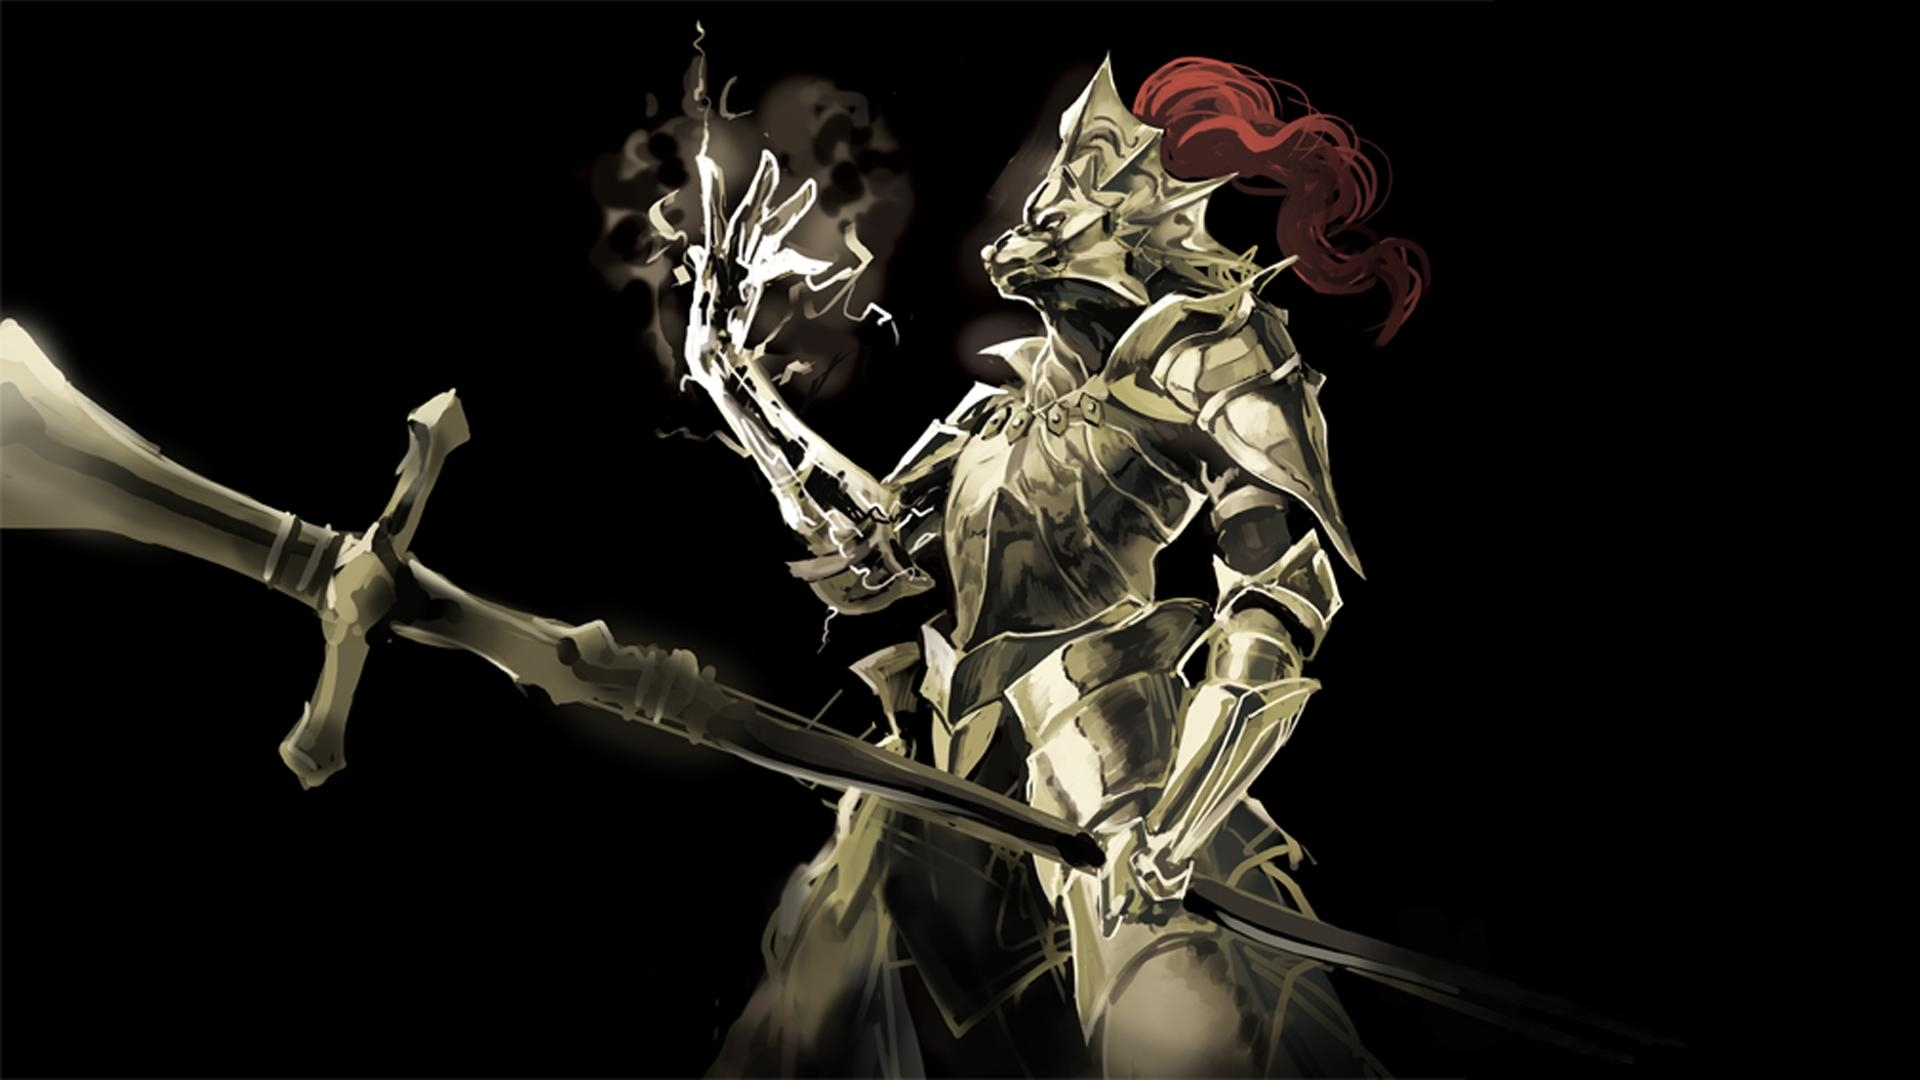 awesome ornstein wallpaper : darksouls